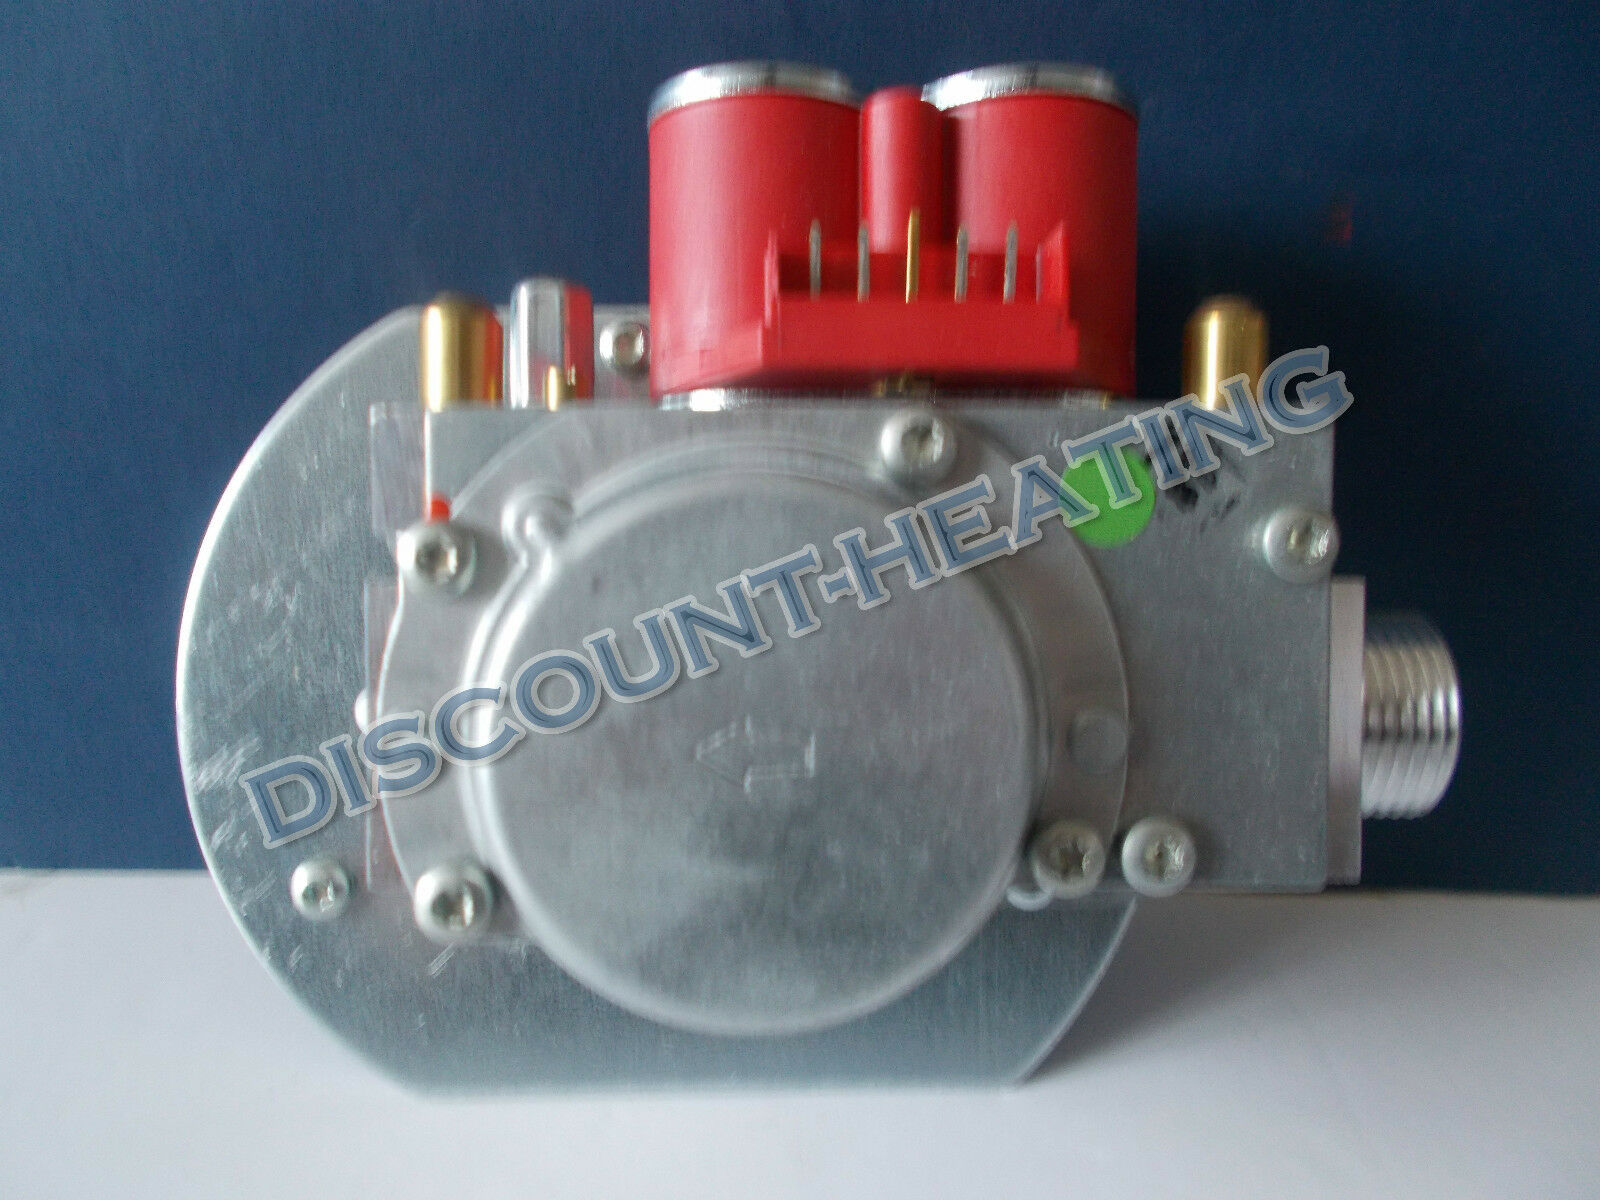 ANDREWS E659 COMMERCIAL Water Heating Gas Valve - £265.00 | PicClick UK